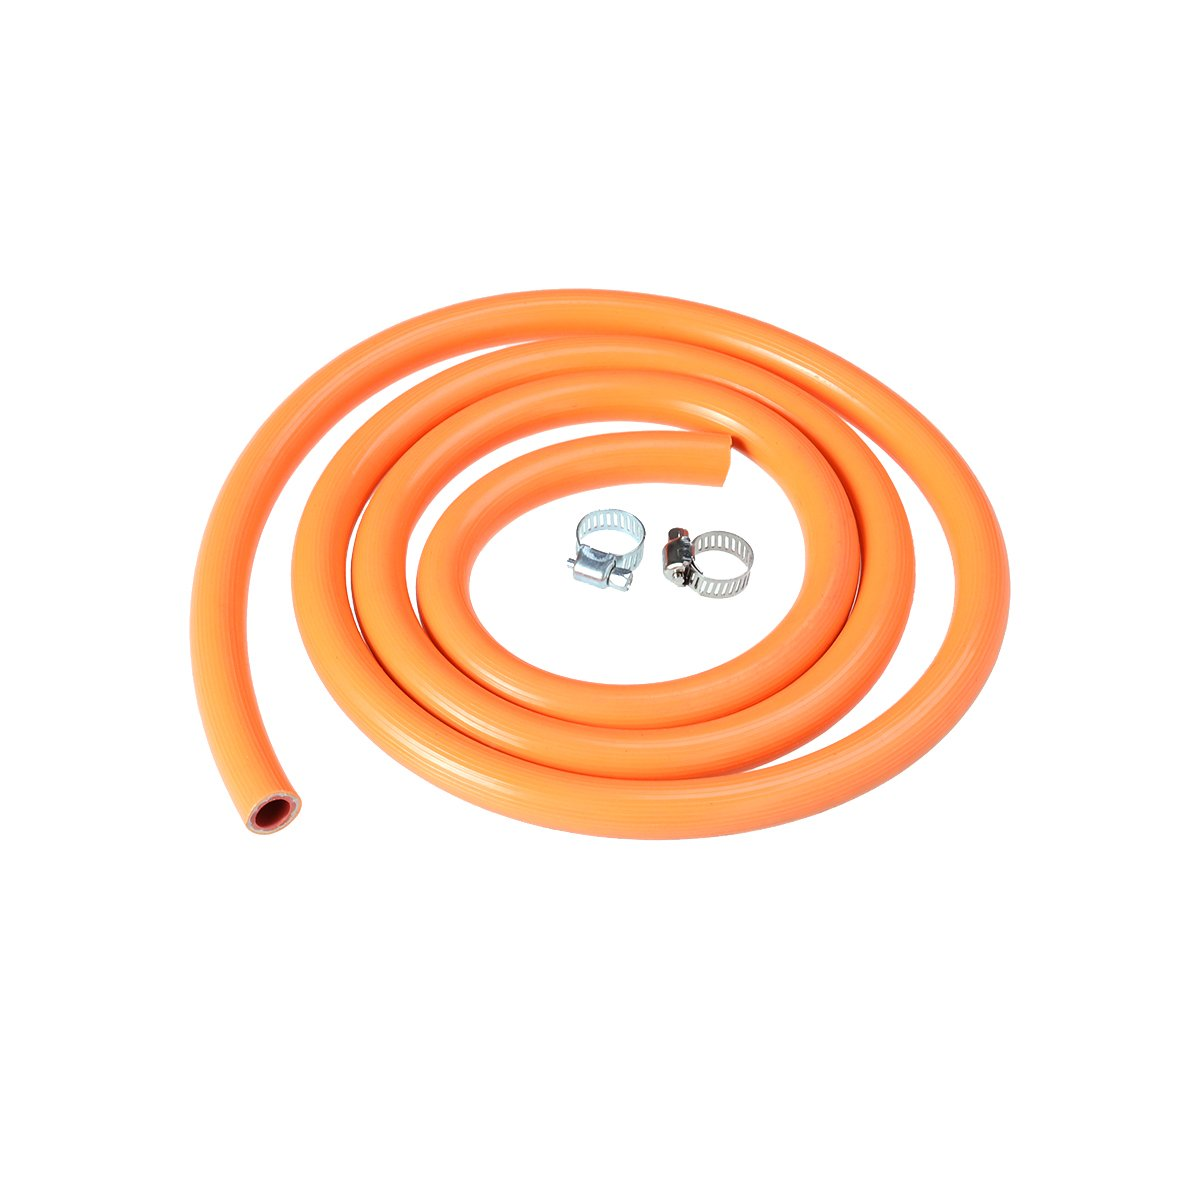 OUNONA 150cm Gas Regulator Disconnect Hose Assembly Rubber Natural Liquefied Gas Stove Water Heater Gas Tube with 2 Fittings (Orange)